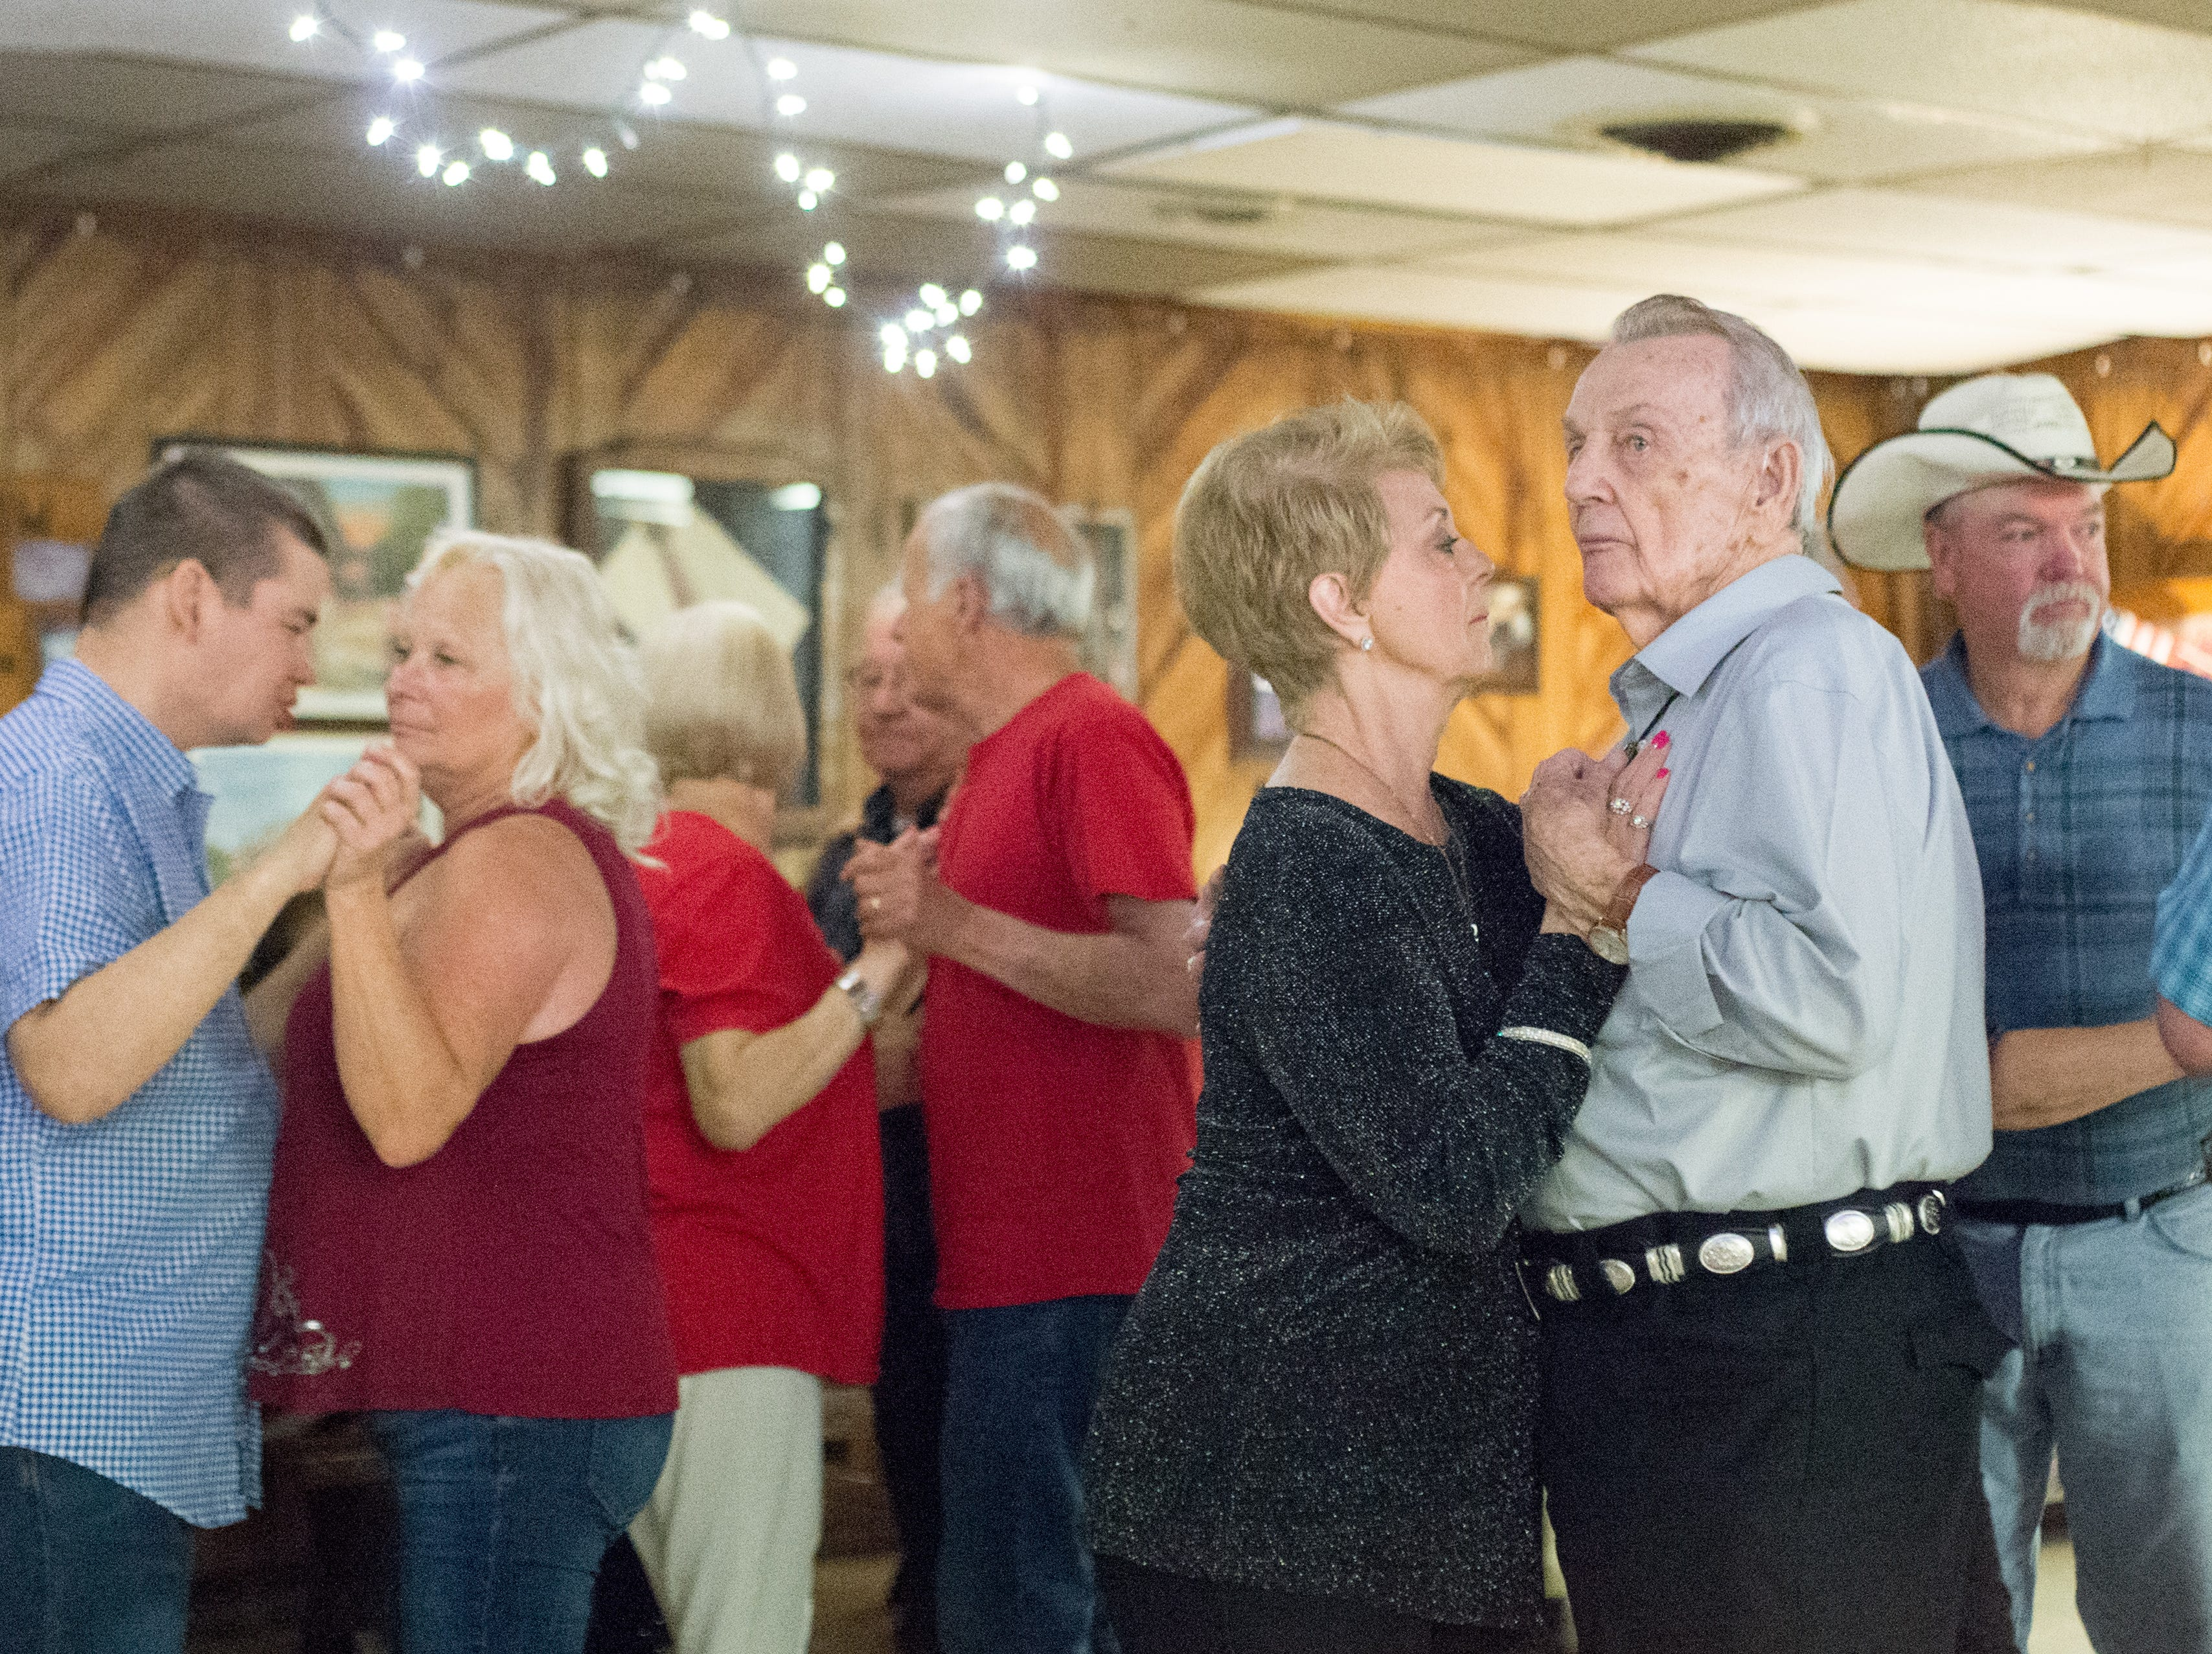 Attendees dance the night away at Long Hollow Jamboree in Goodlettsville on Saturday, April 7.